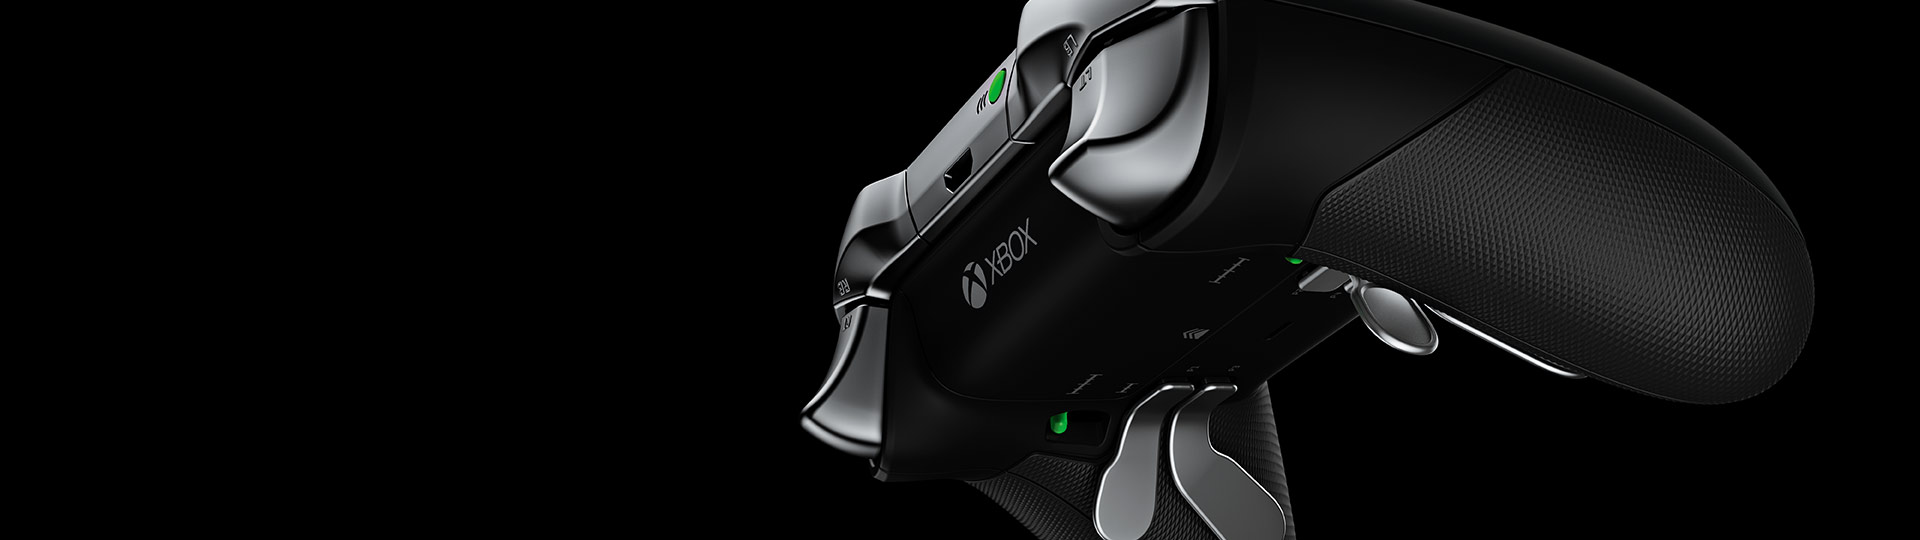 left angled view of xbox elite wireless controller [ 1920 x 540 Pixel ]